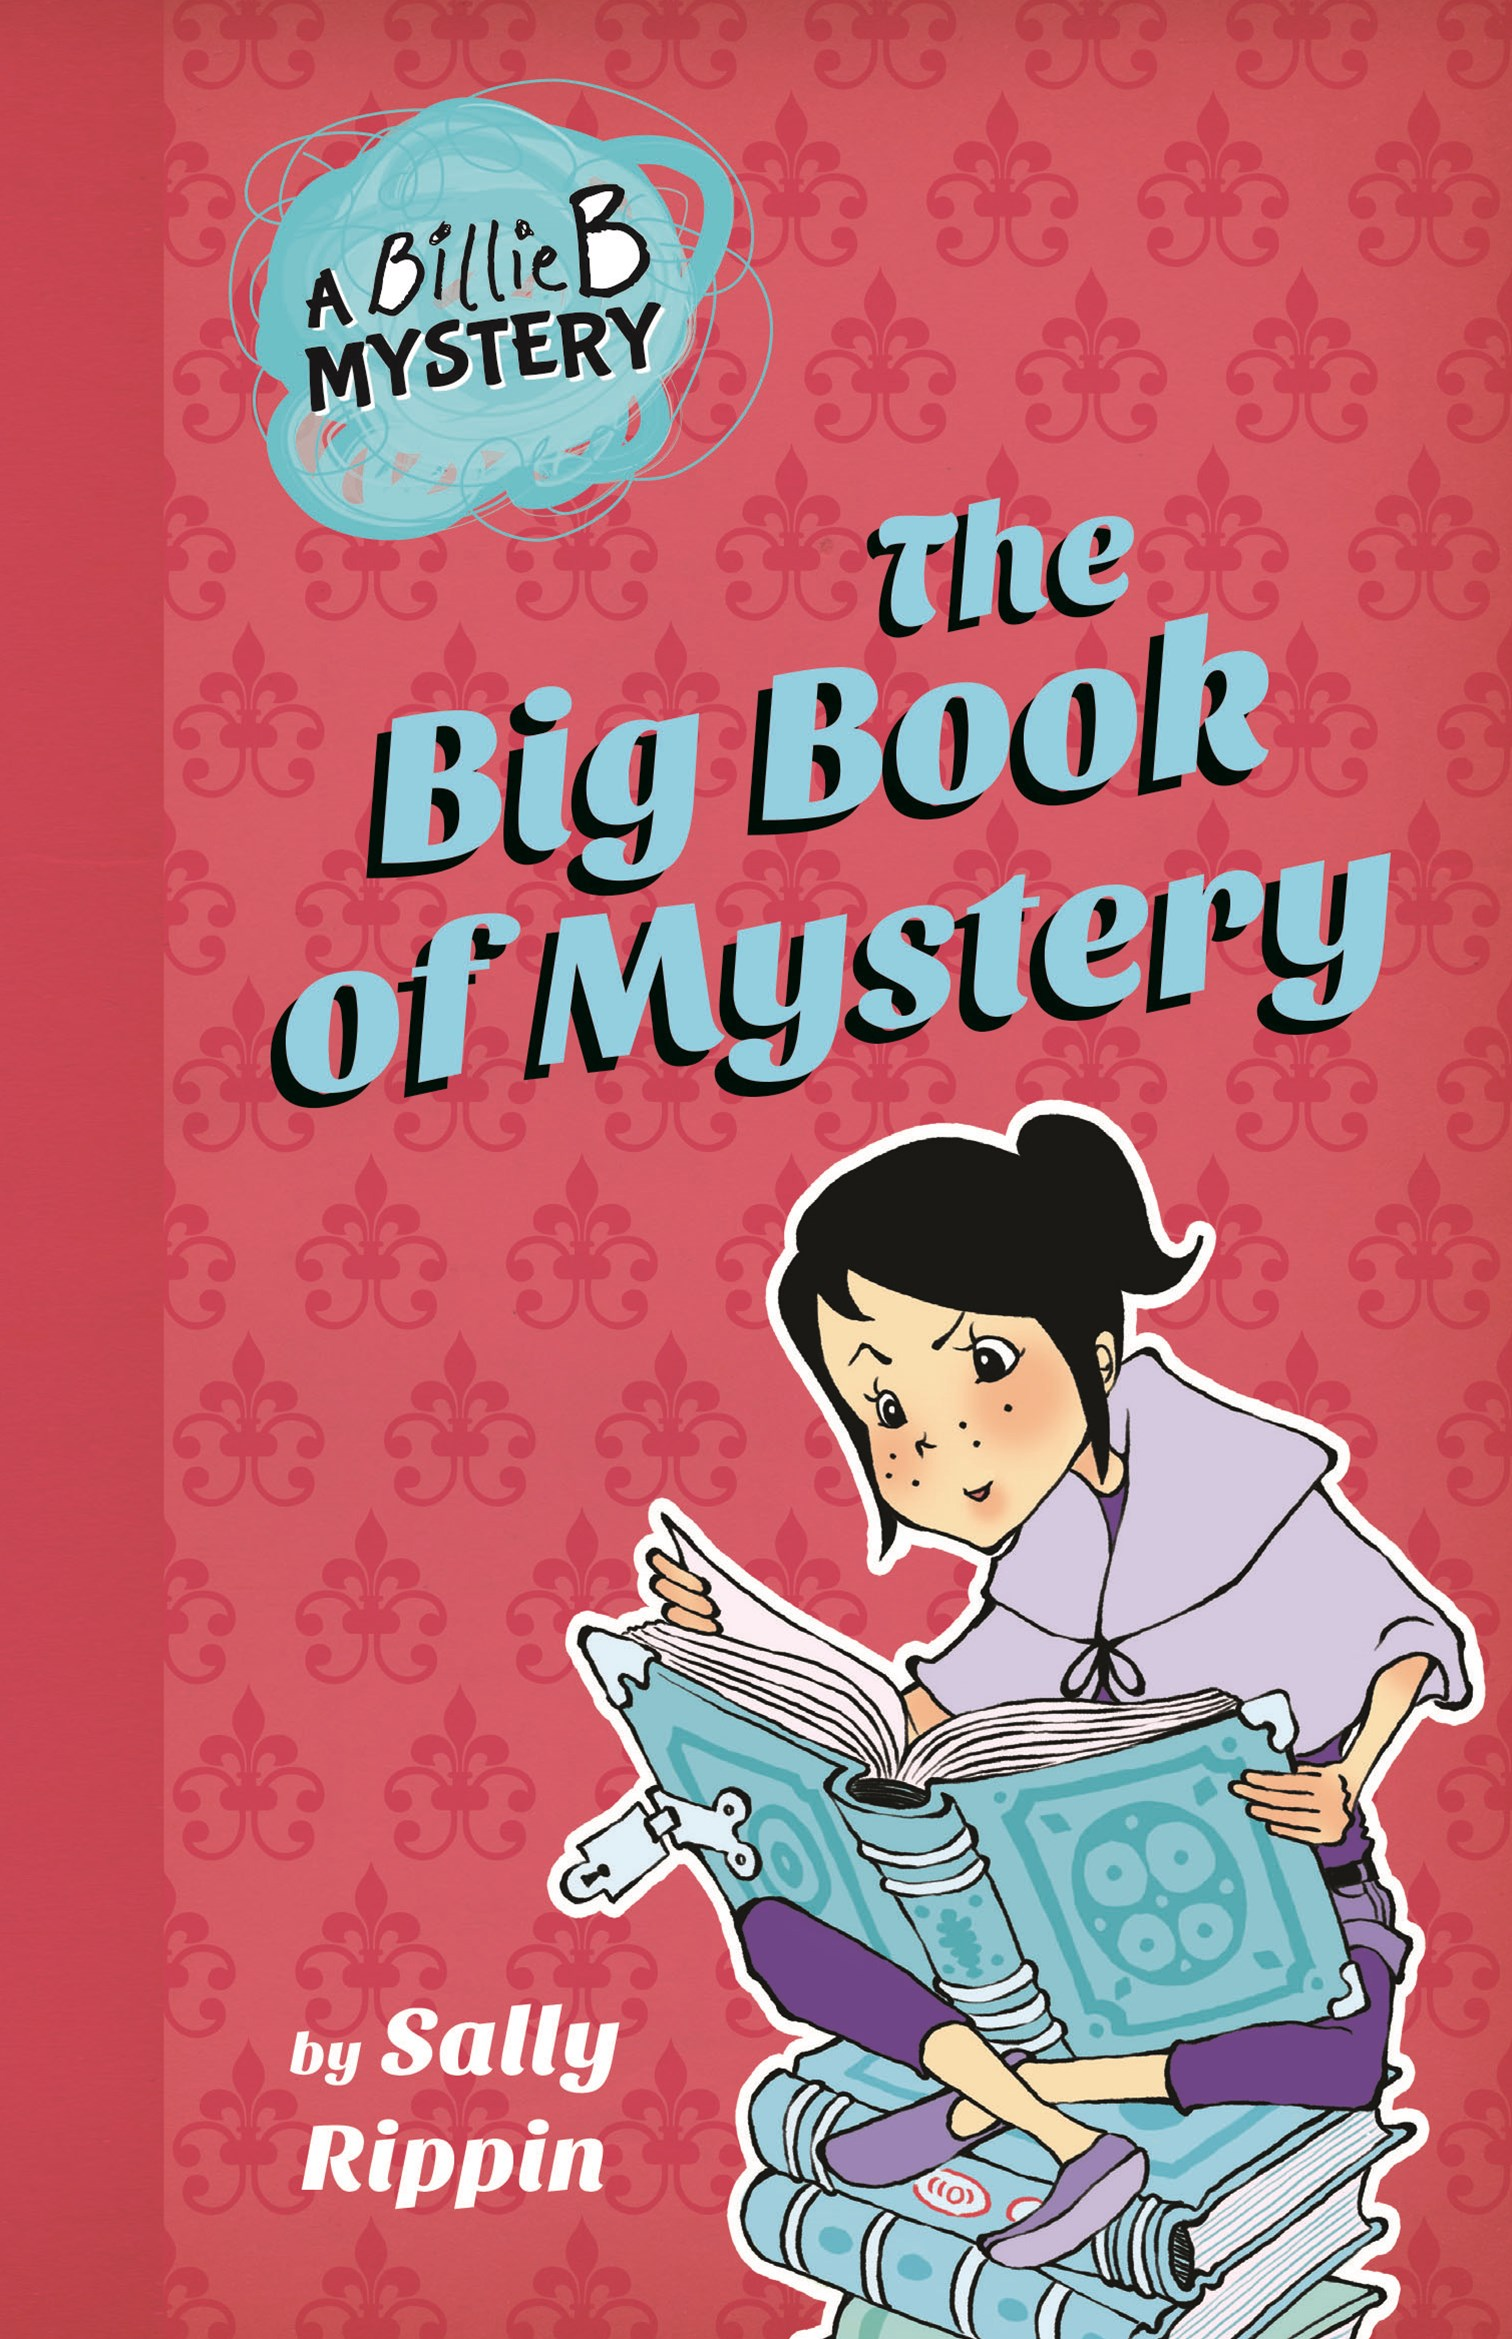 Billie B Brown: the Big Book of Mystery